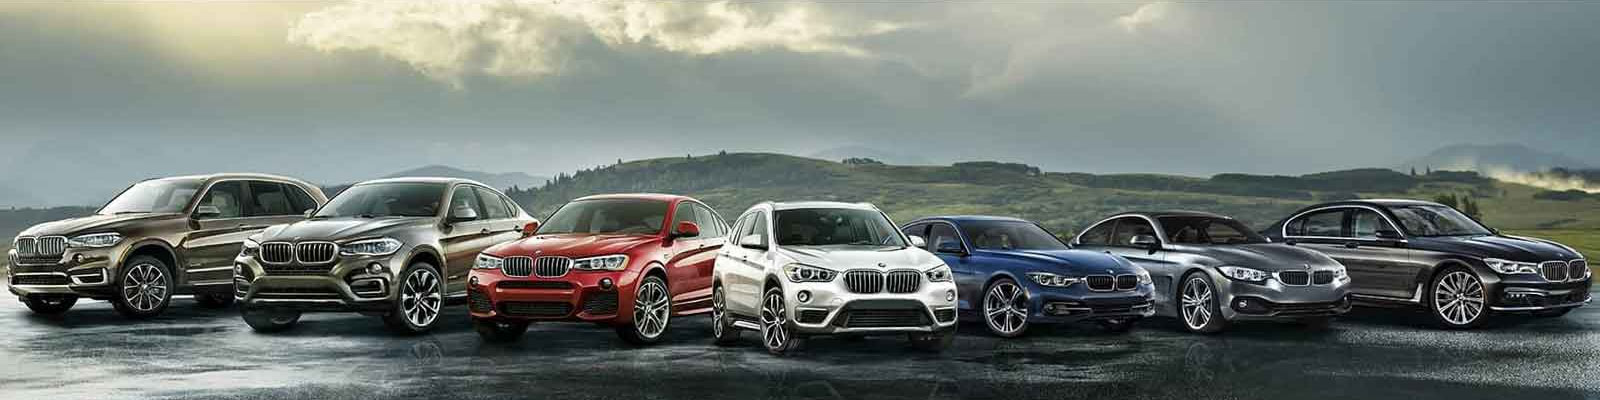 Bmw Cars In India 2020 Upcoming Bmw Cars Price Models Updates